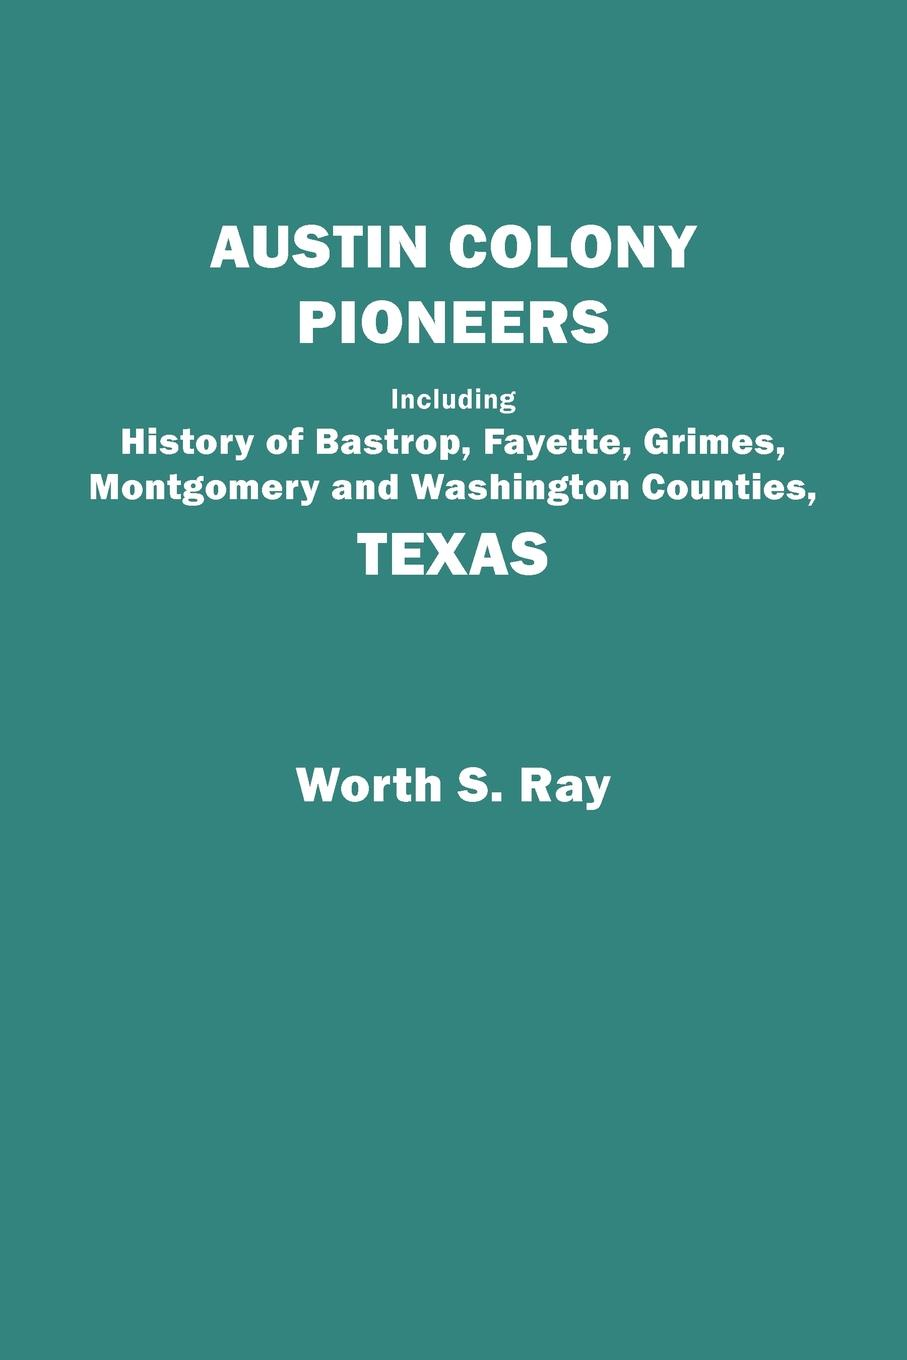 Worth S. Ray Austin Colony Pioneers. Including History of Bastrop, Fayette, Grimes, Montgomery and Washington Counties, Texas 86 smart switch wifi touch panel remote app control 2 gang wifi smart rf app touch control wall light timer switch z3